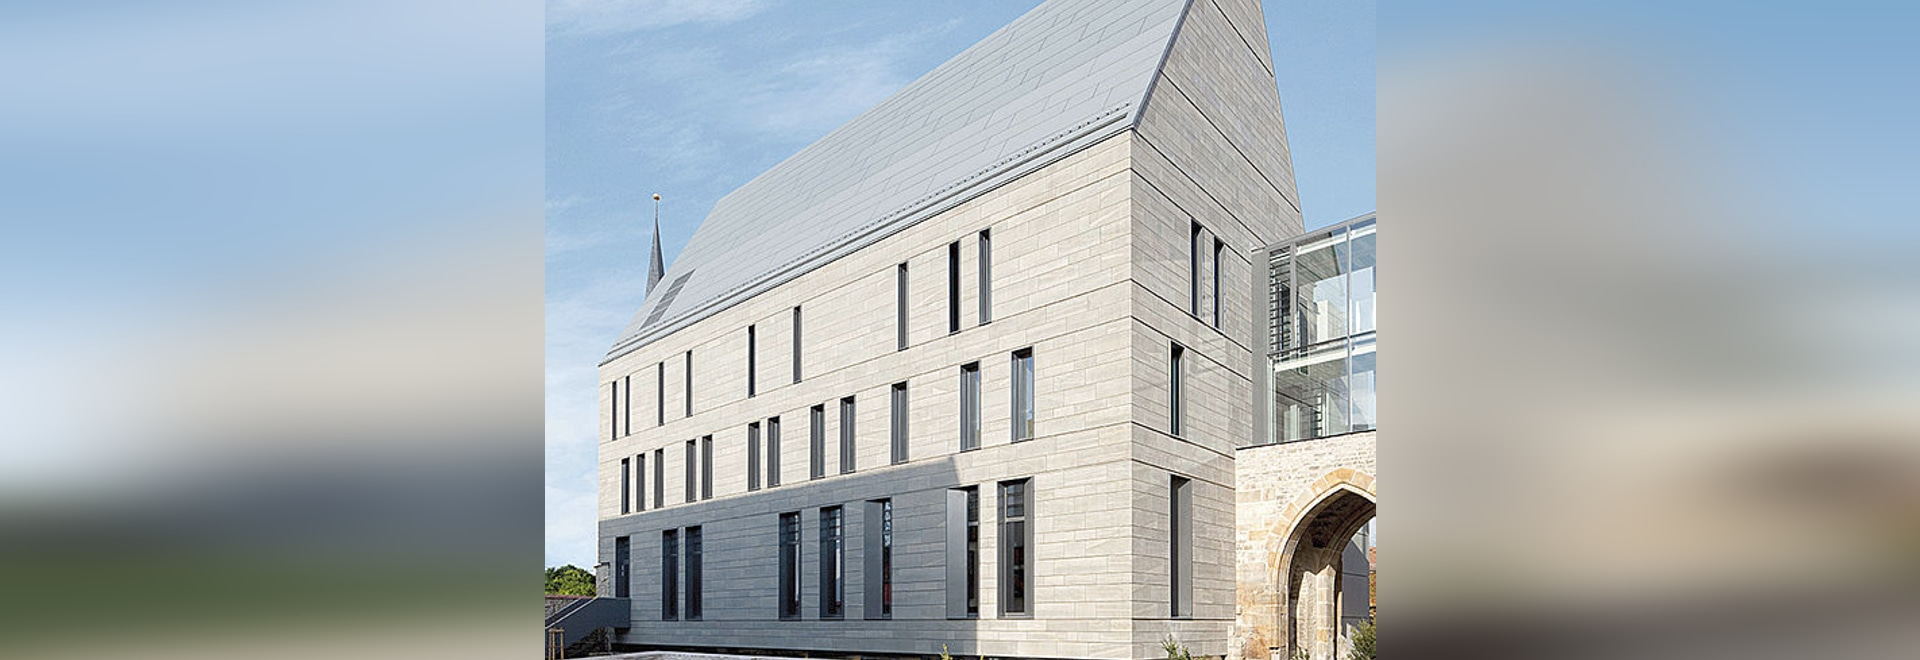 Library Augustinian Monastery - Historic architecture in modern clothing with Reynobond Zinc composite panels